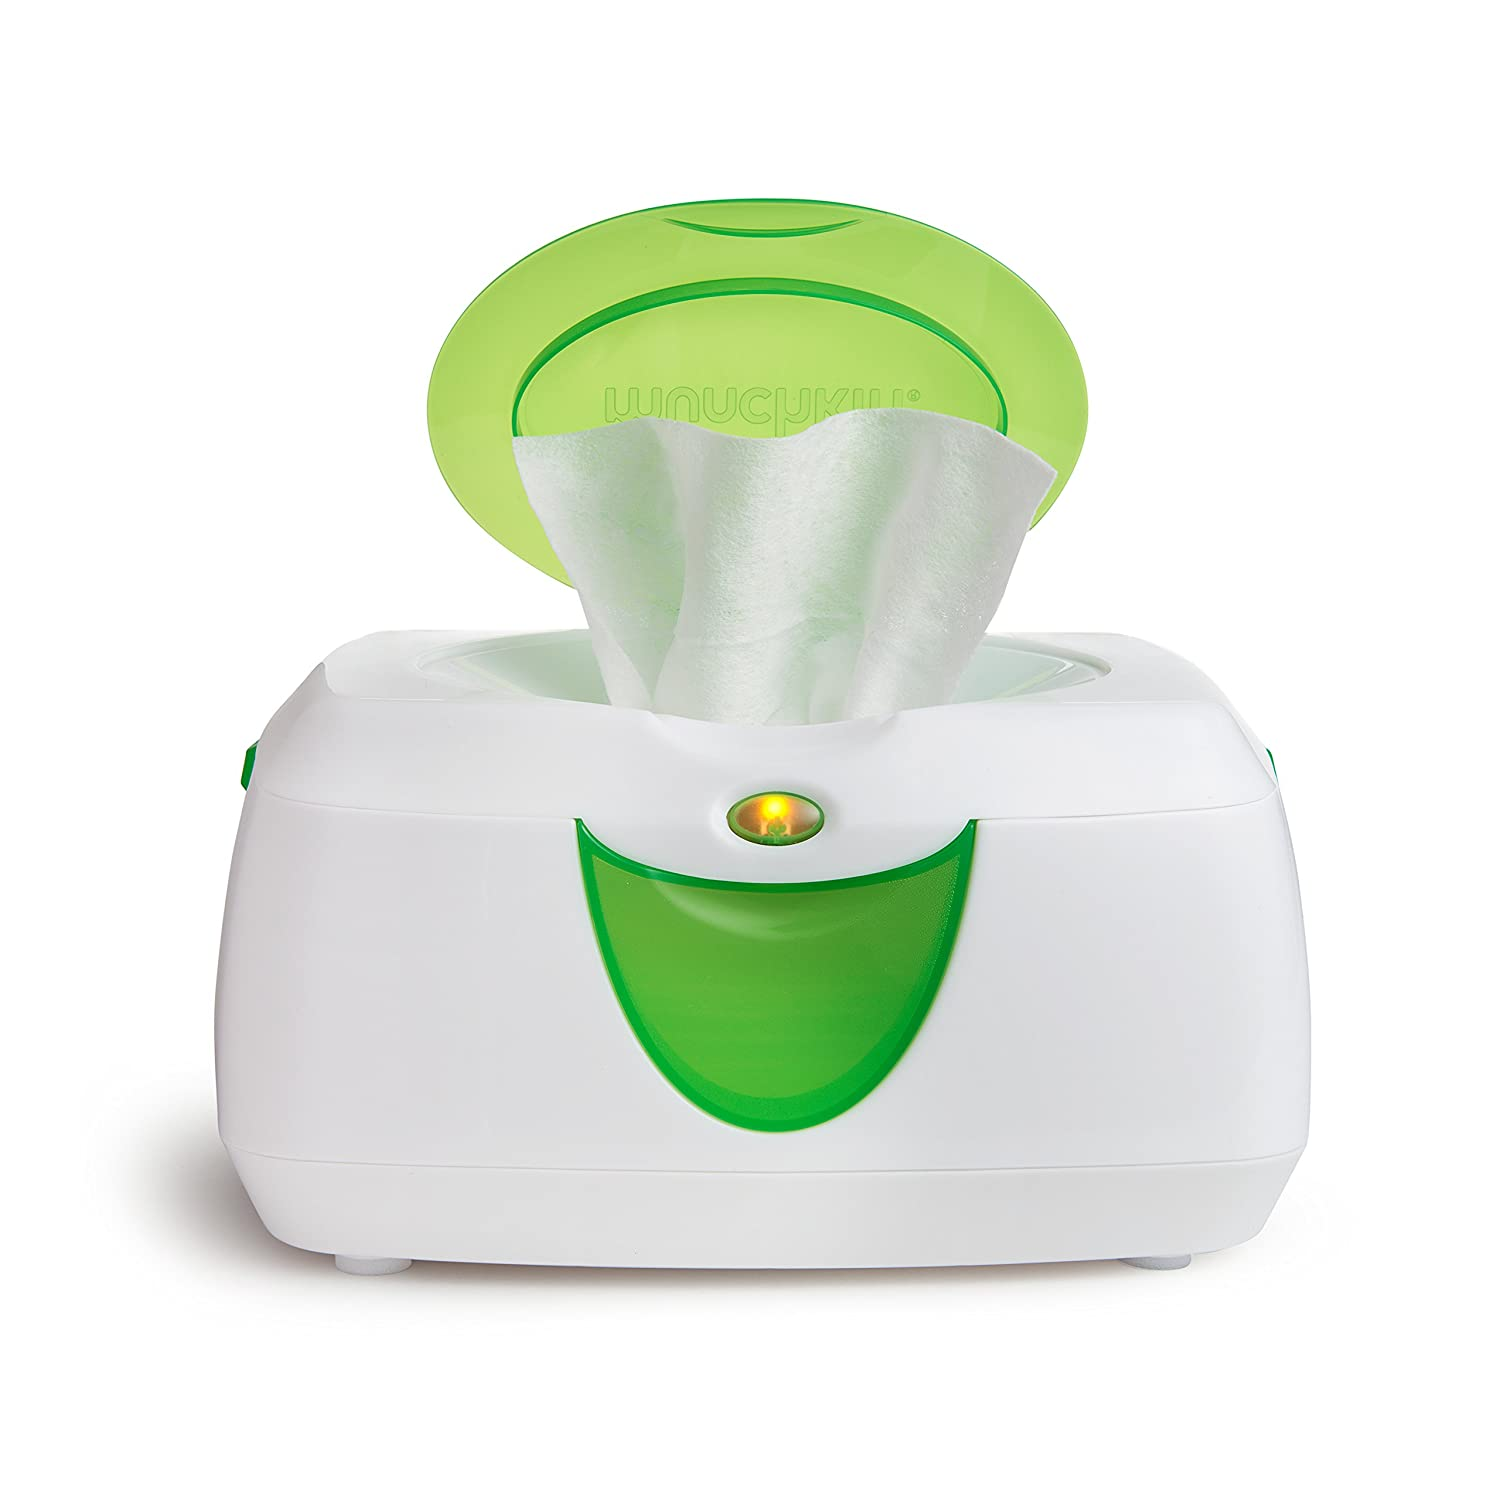 Warm Glow Wipe Warmer From Munchkin